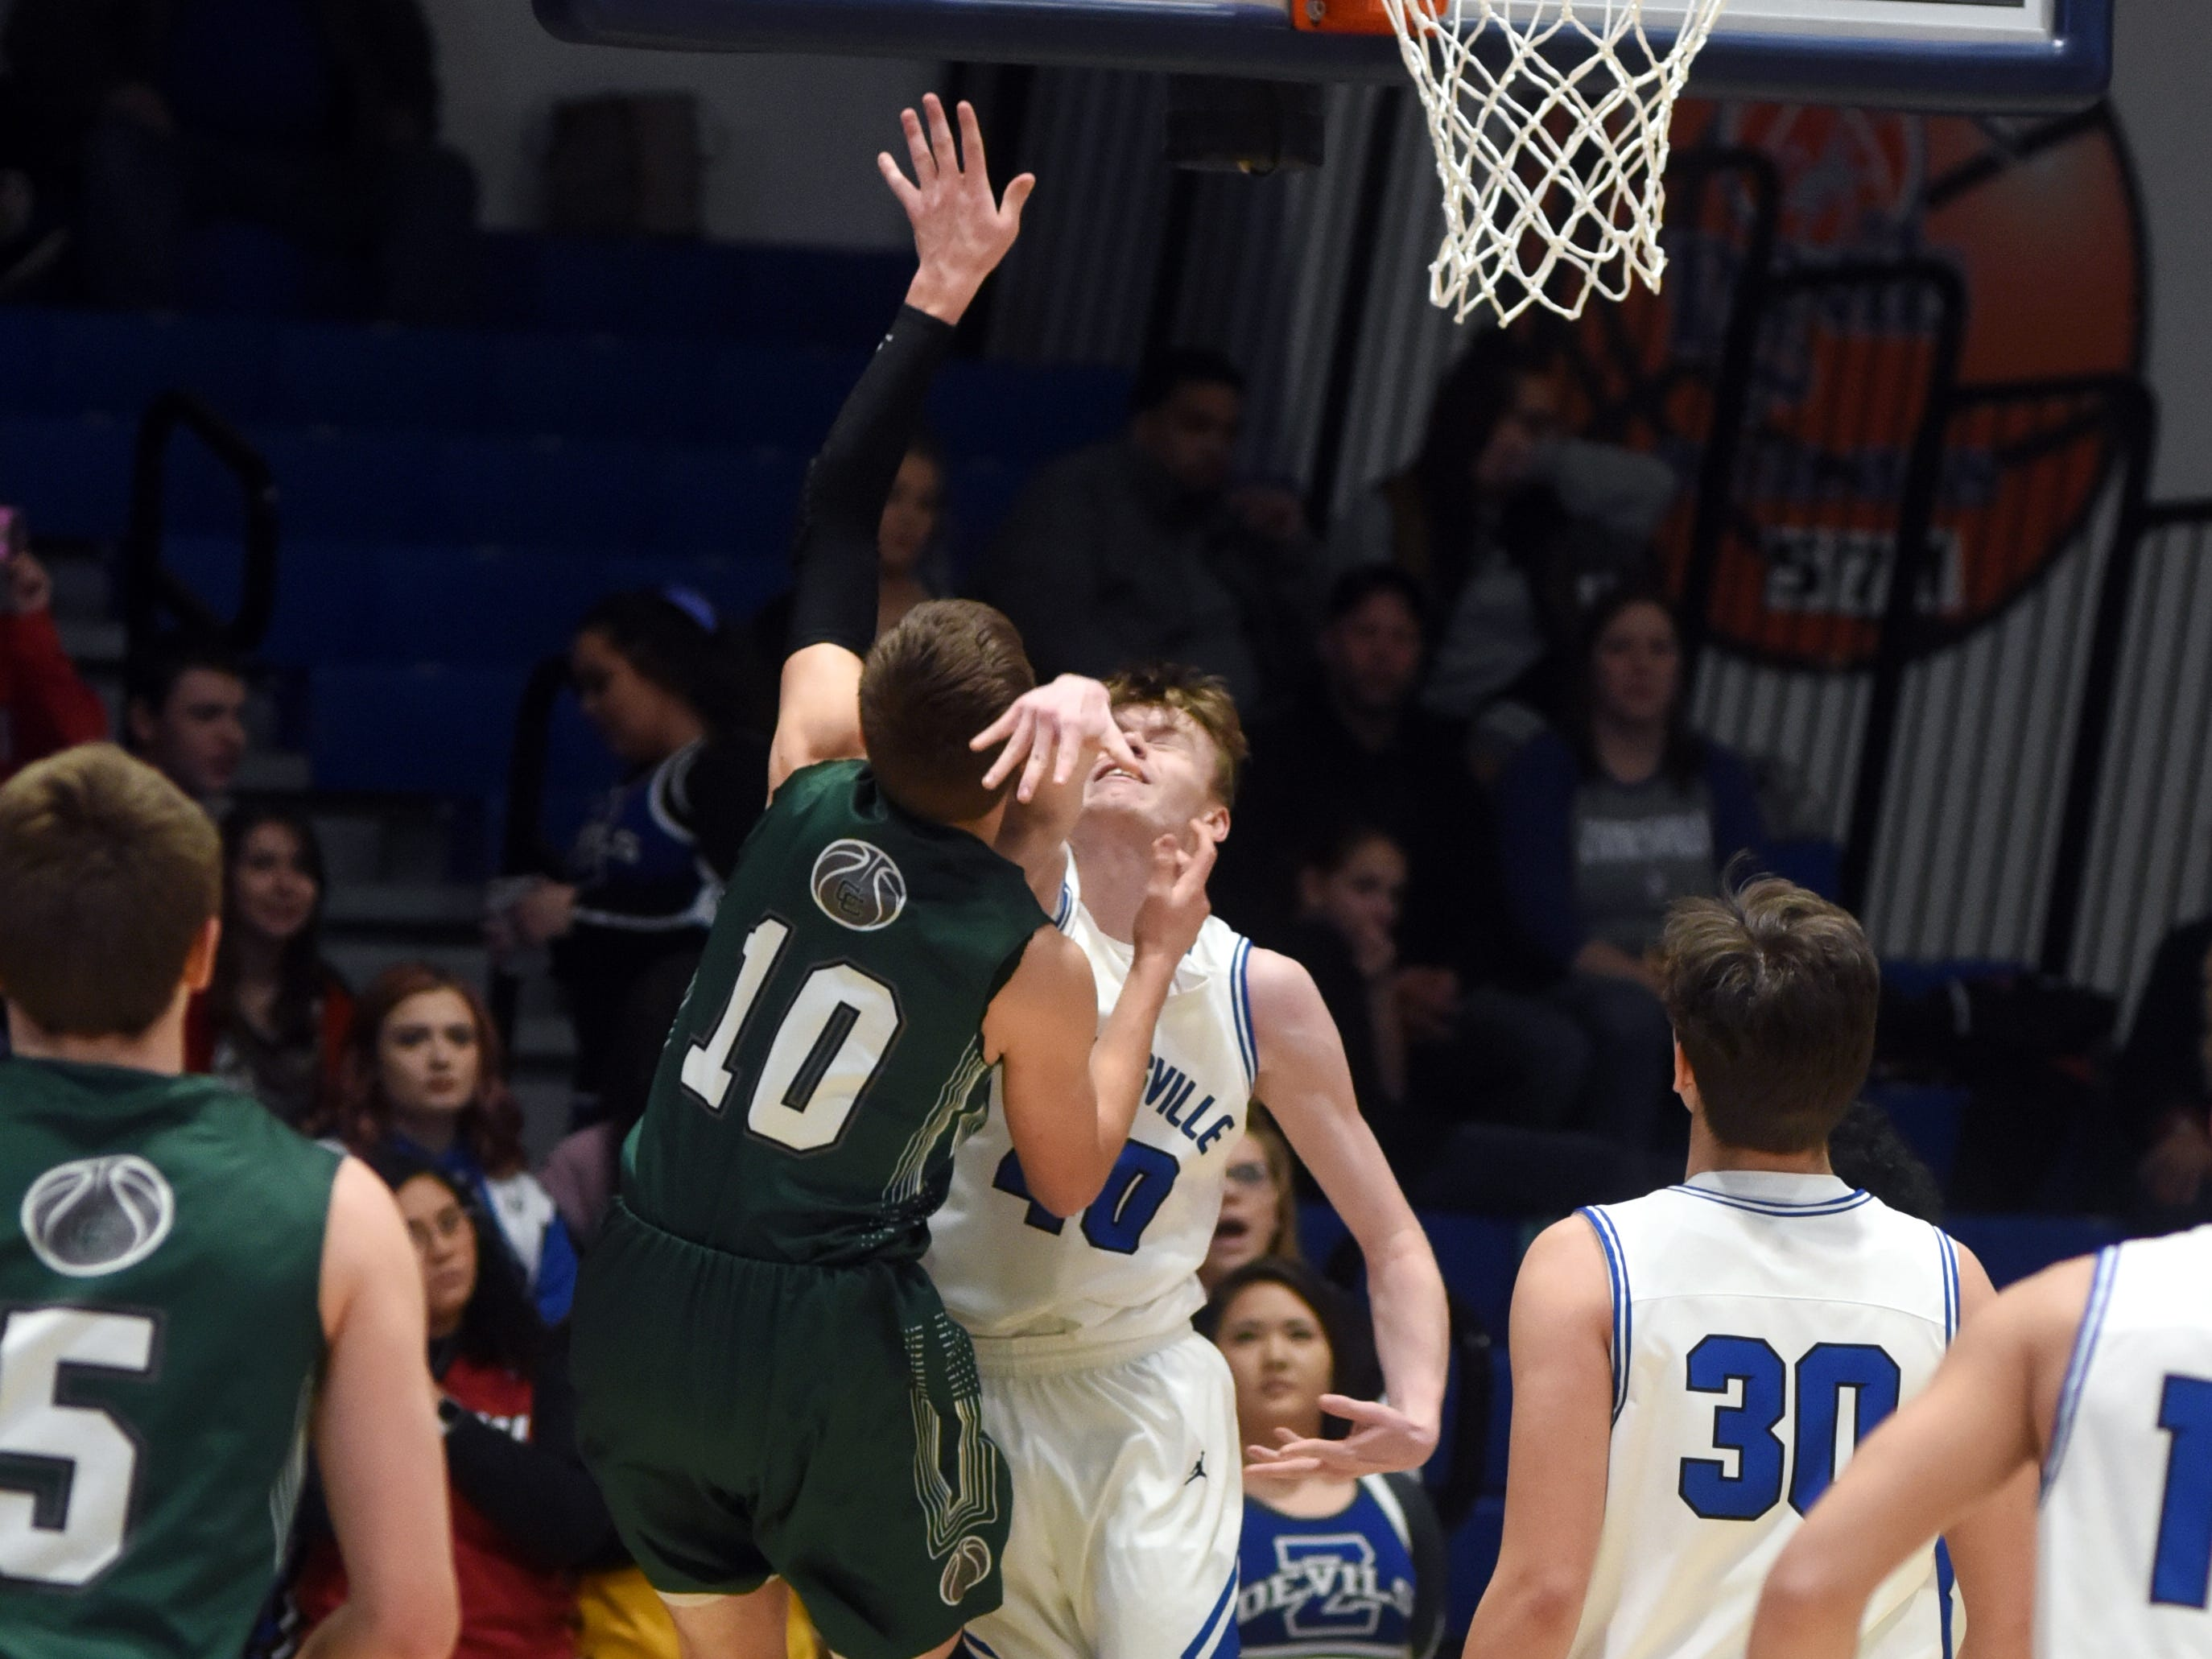 Canton Central Catholic's Dylan Johnson draws contact from Zanesville's Brennan Reasoner during the first half.